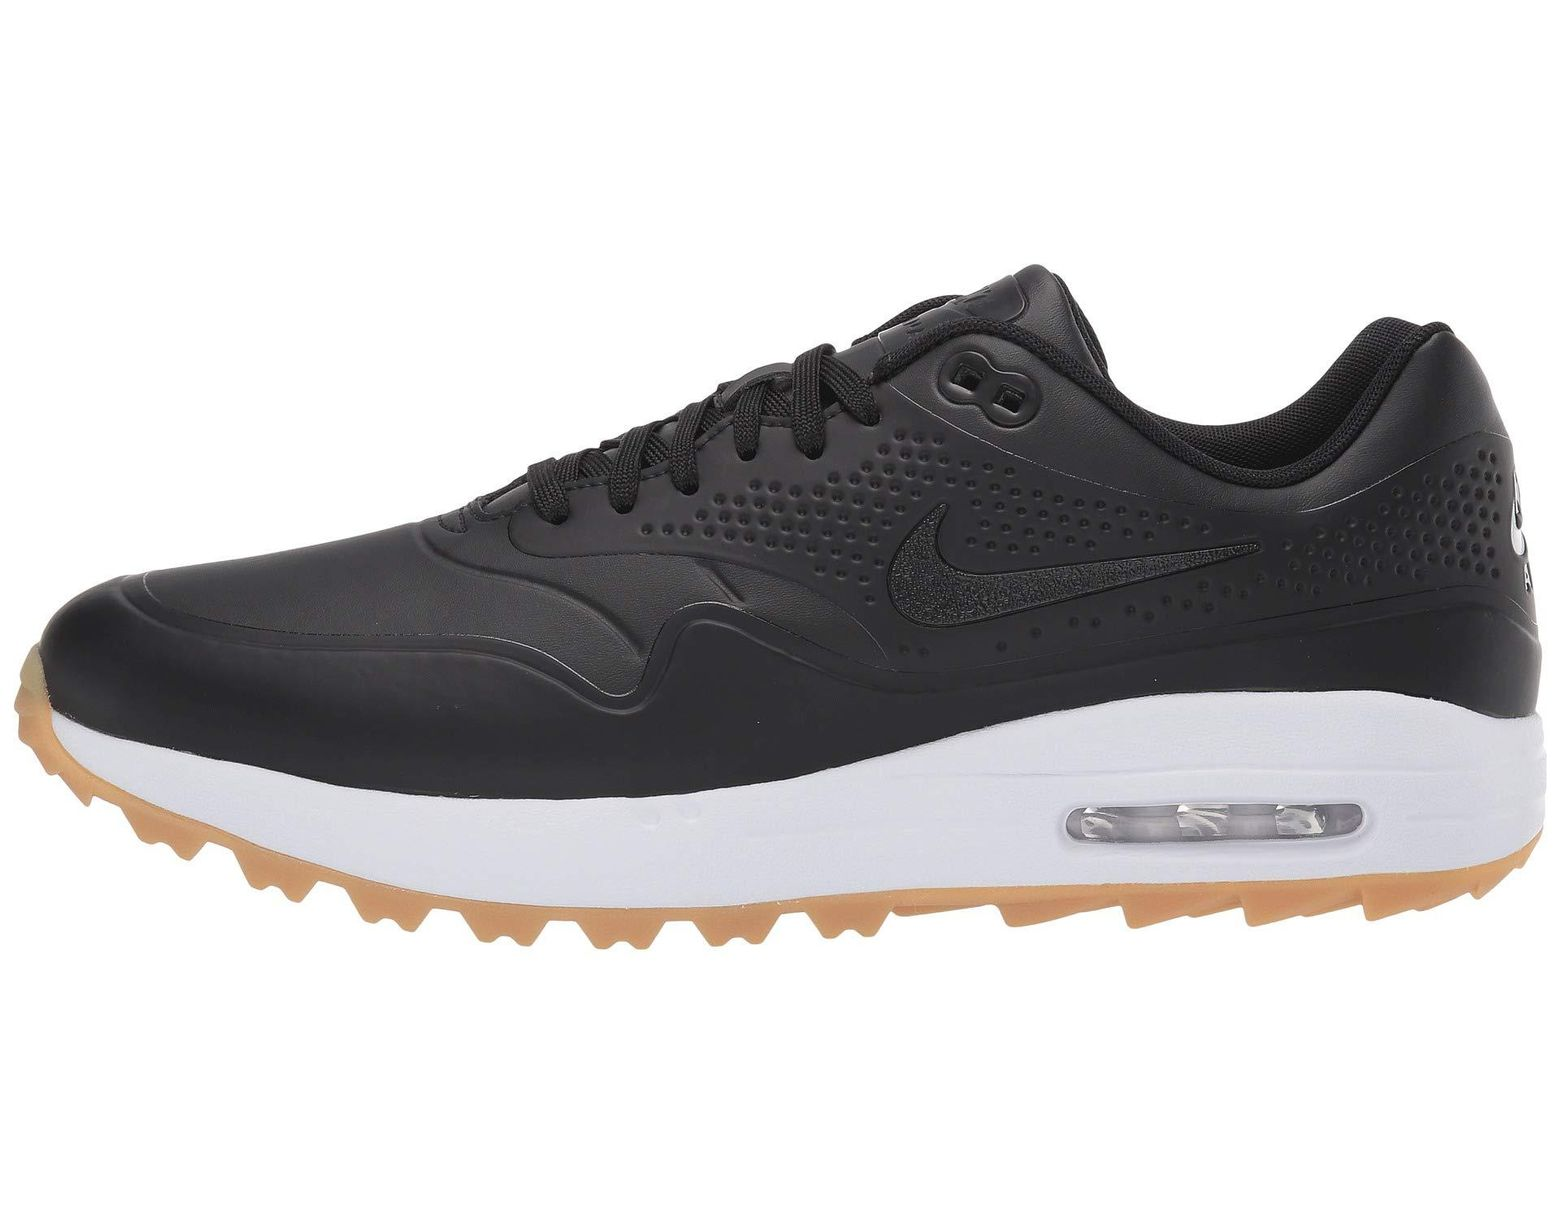 64b9af3380415 Lyst - Nike Air Max 1g Faux Leather And Rubber Golf Shoes in Black .